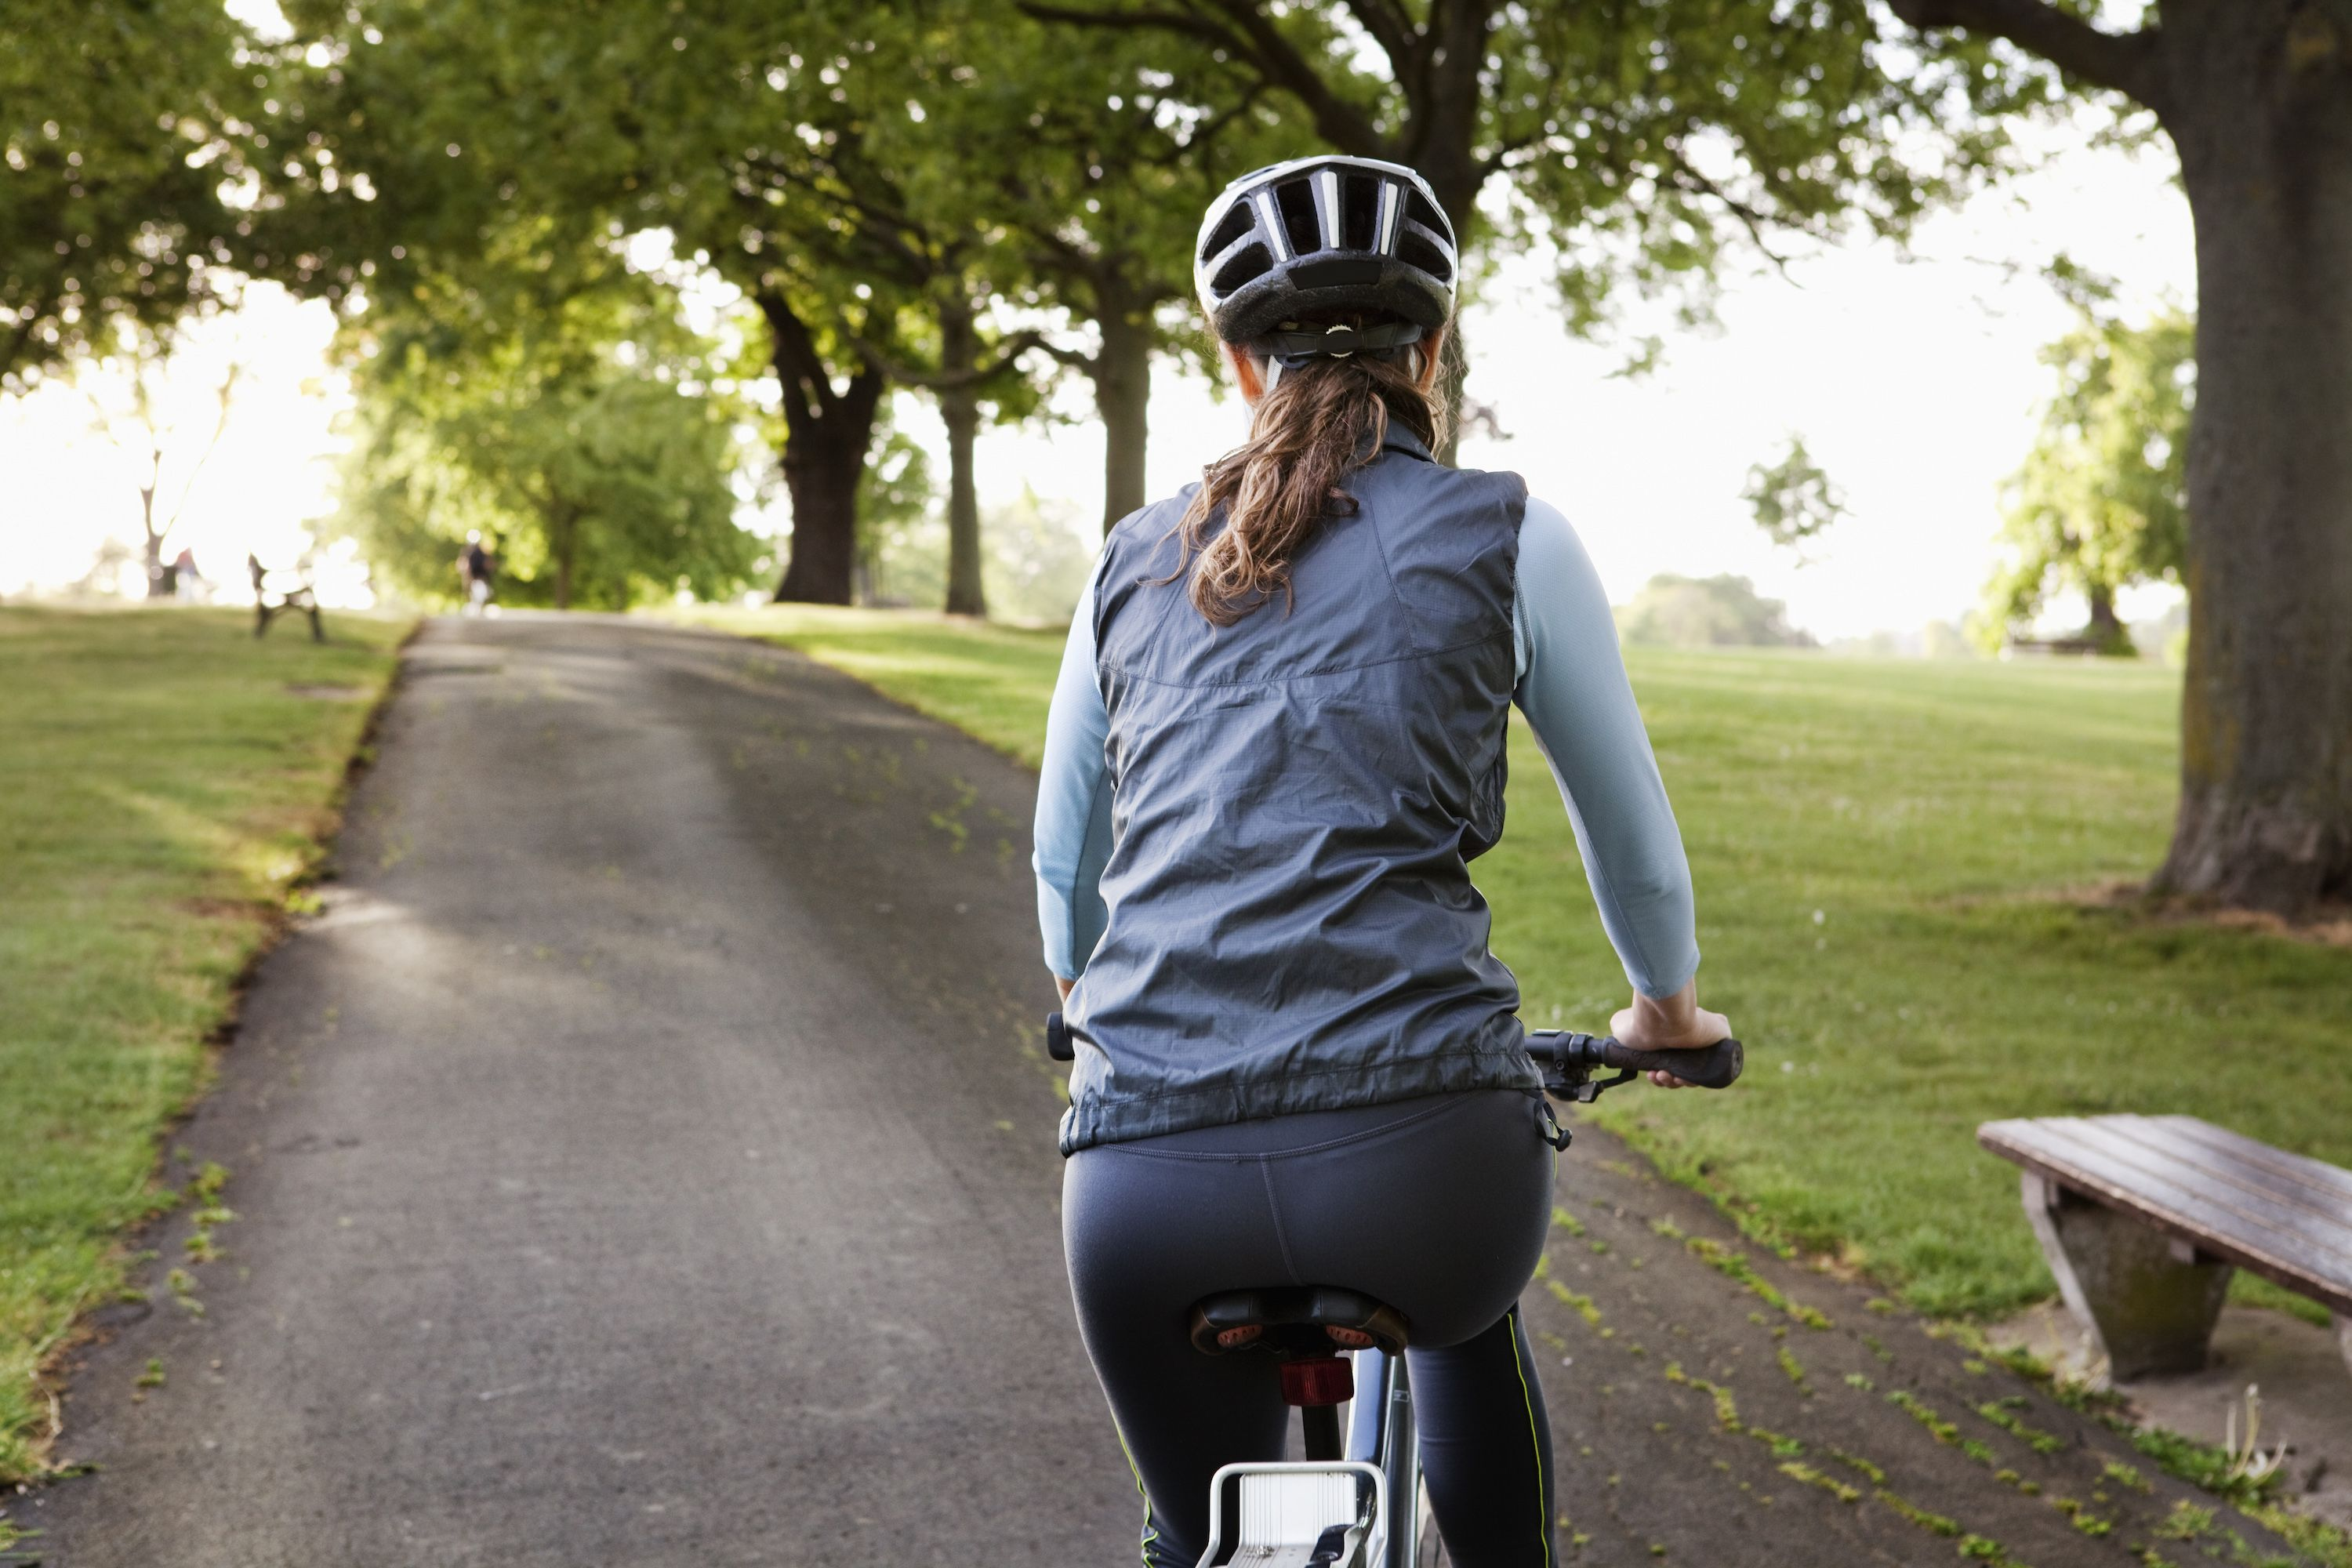 21 Cycling Tips for Beginners to Get You Going and Improving Safely